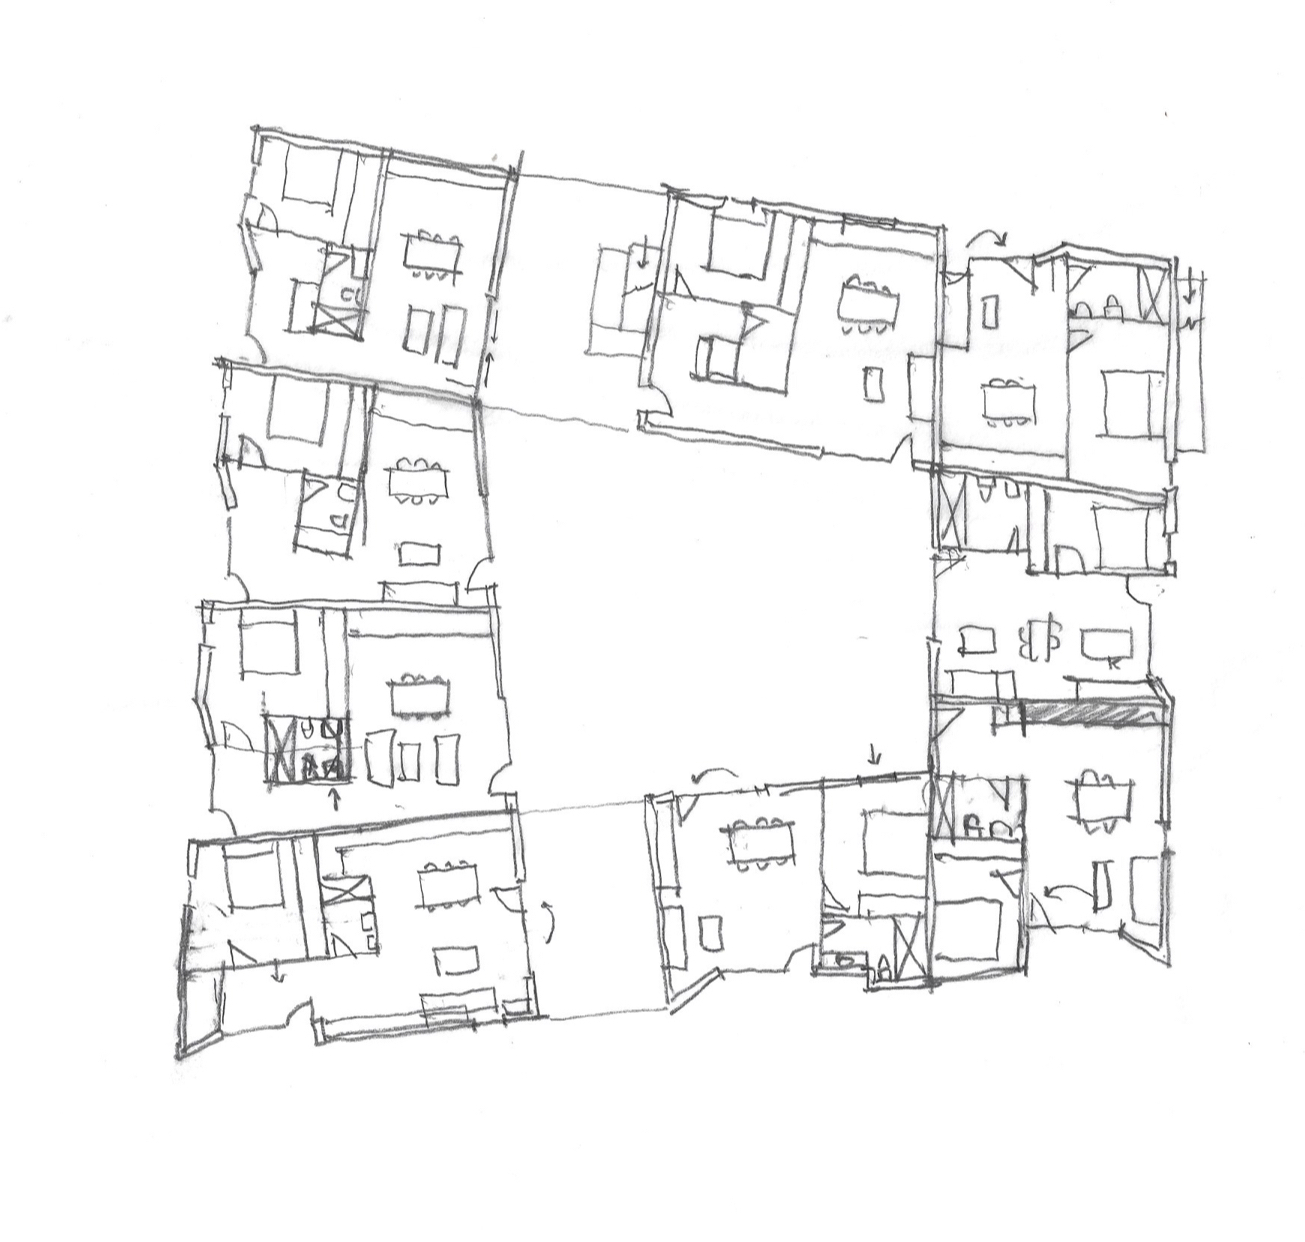 Early floor plan sketch